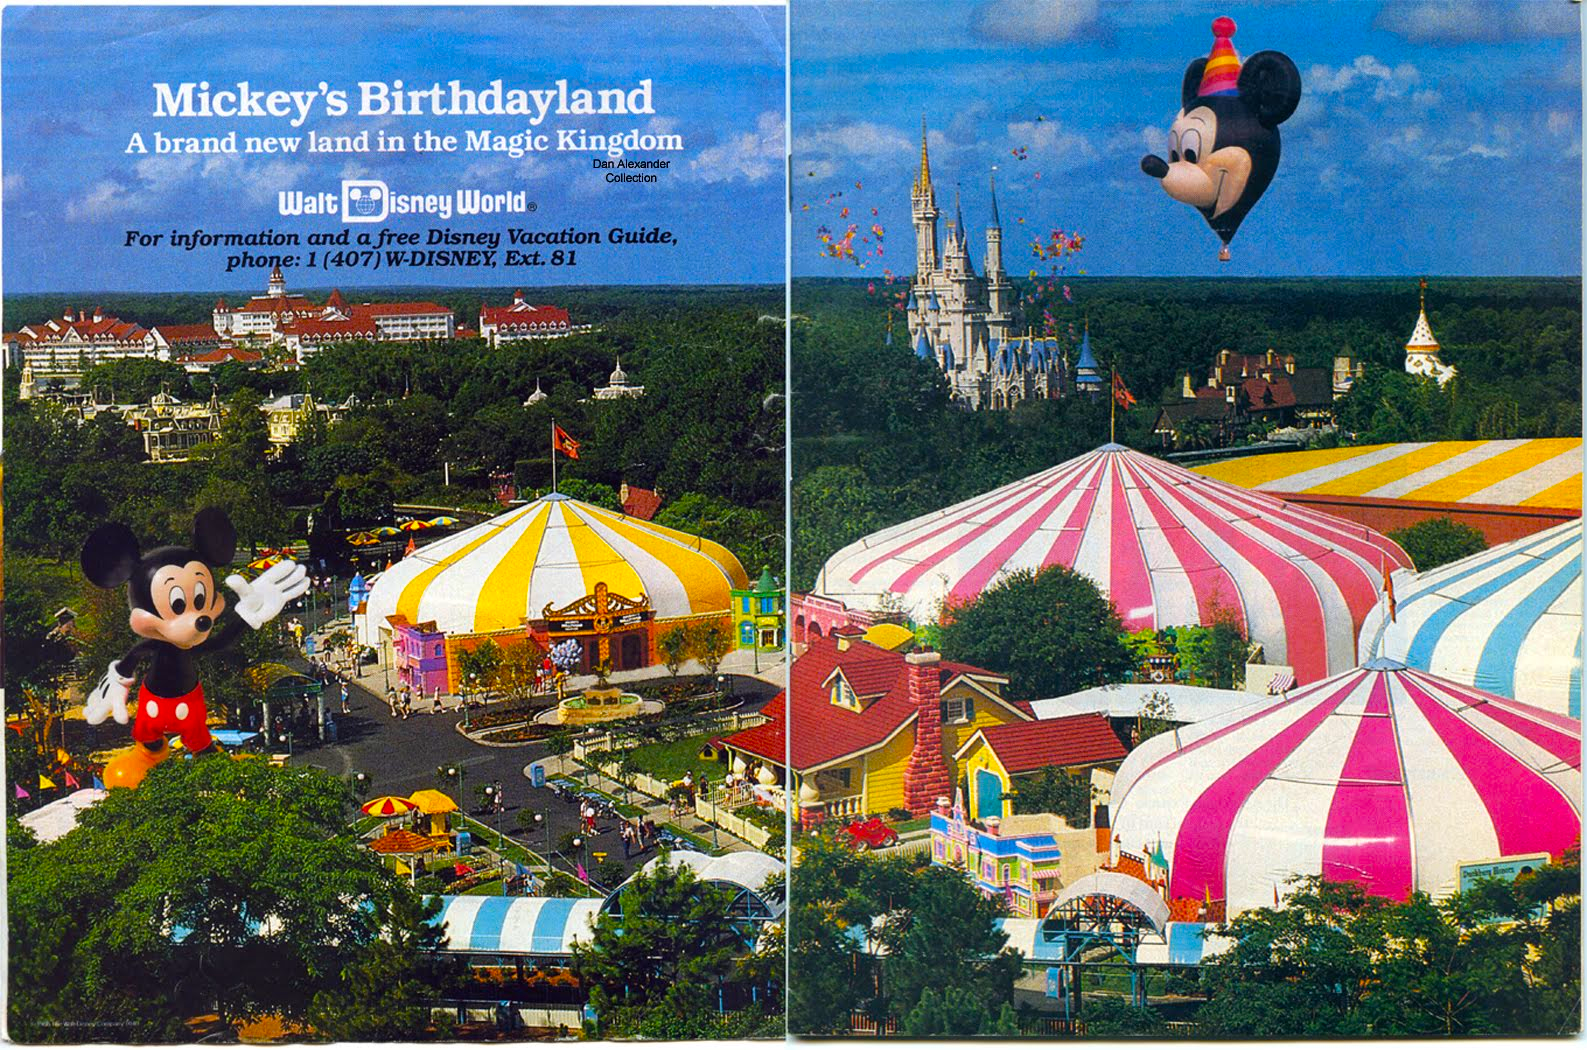 Mickey's Birthdayland